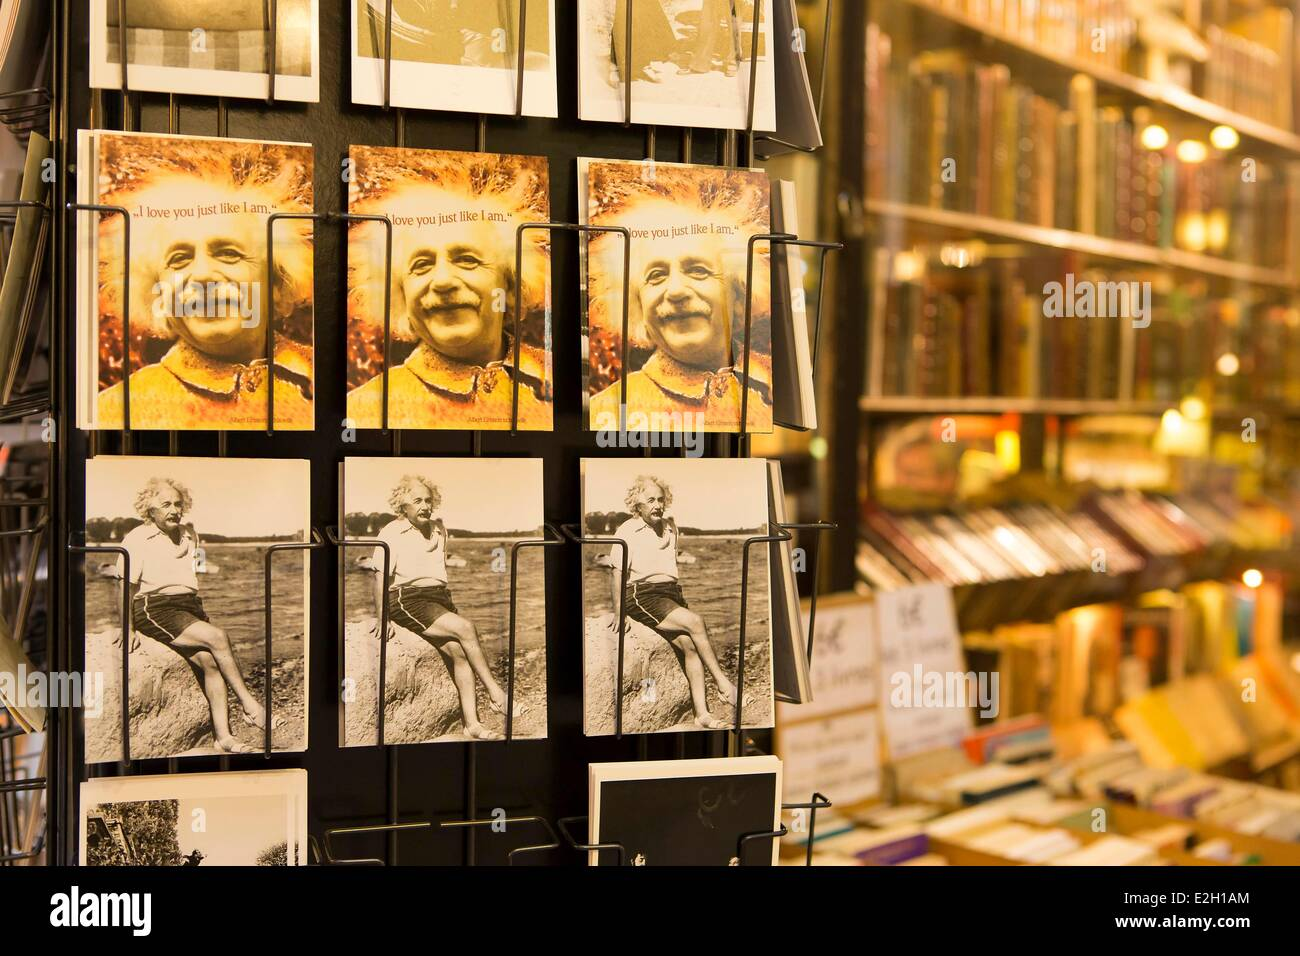 France Paris postcards for sale at La Librairie Ancienne de Francois Jousseaume ( Francois Jousseaume old bookstore) Stock Photo